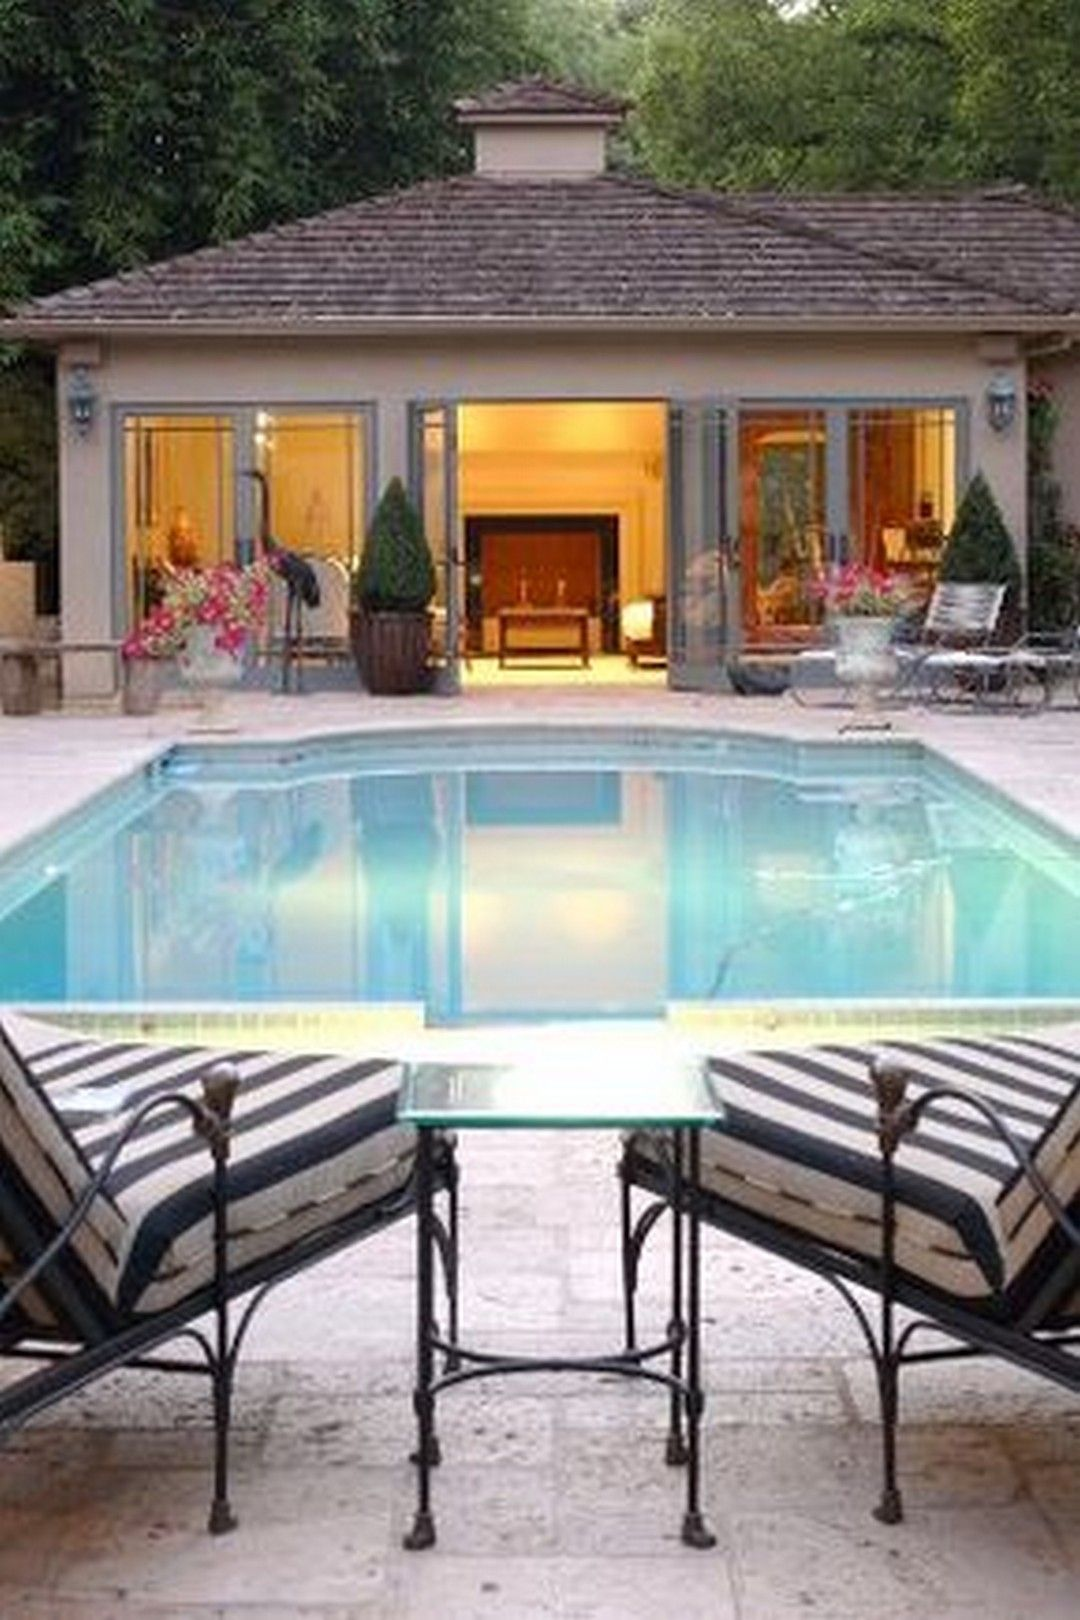 17 Beautiful Pool House Decorating Ideas On A Budget Https Www Onechitecture Com 2017 10 29 17 Beaut Small Pool Houses Pool House Interiors Luxury Pool House